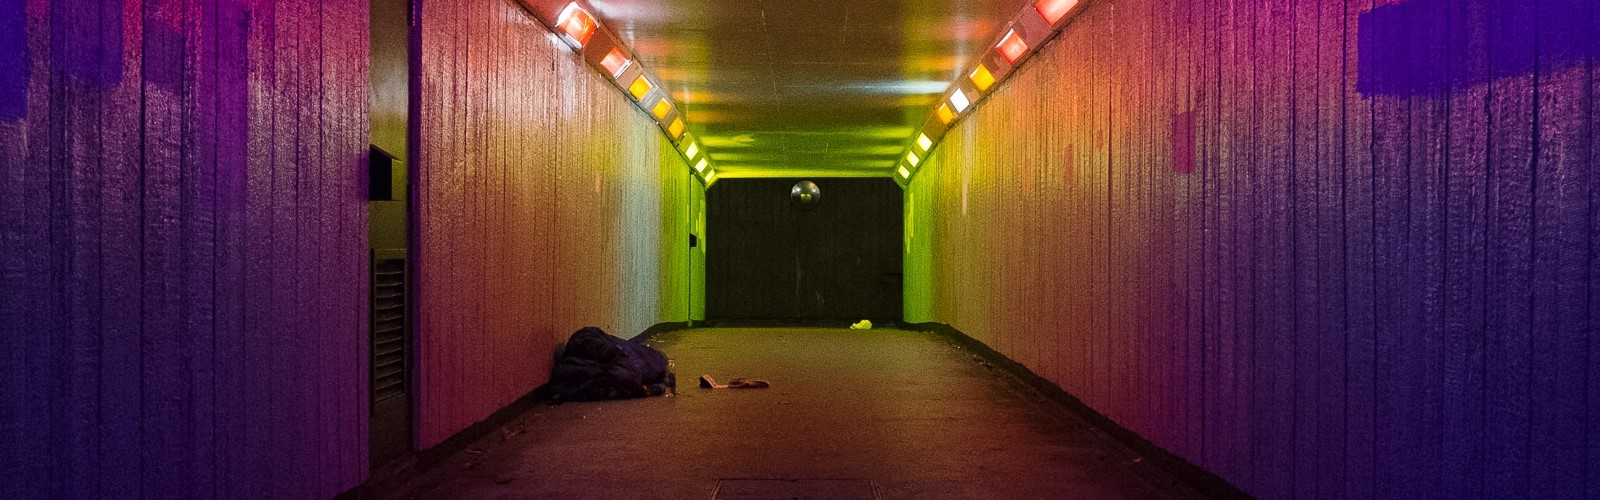 Image: subway with a rough sleeper at the far end